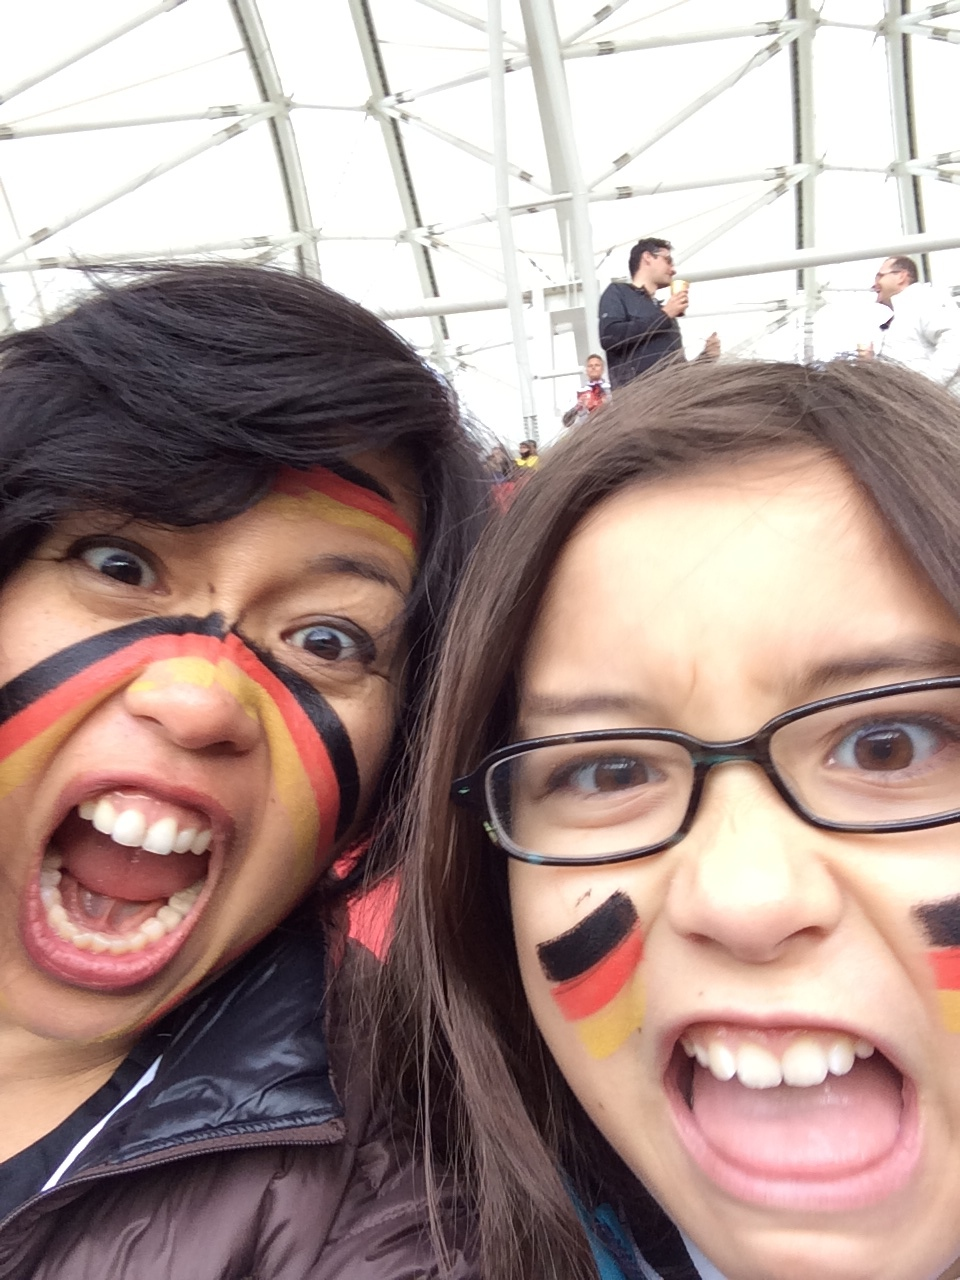 Luisa and I at the World Cup in Brazil! We meant business.